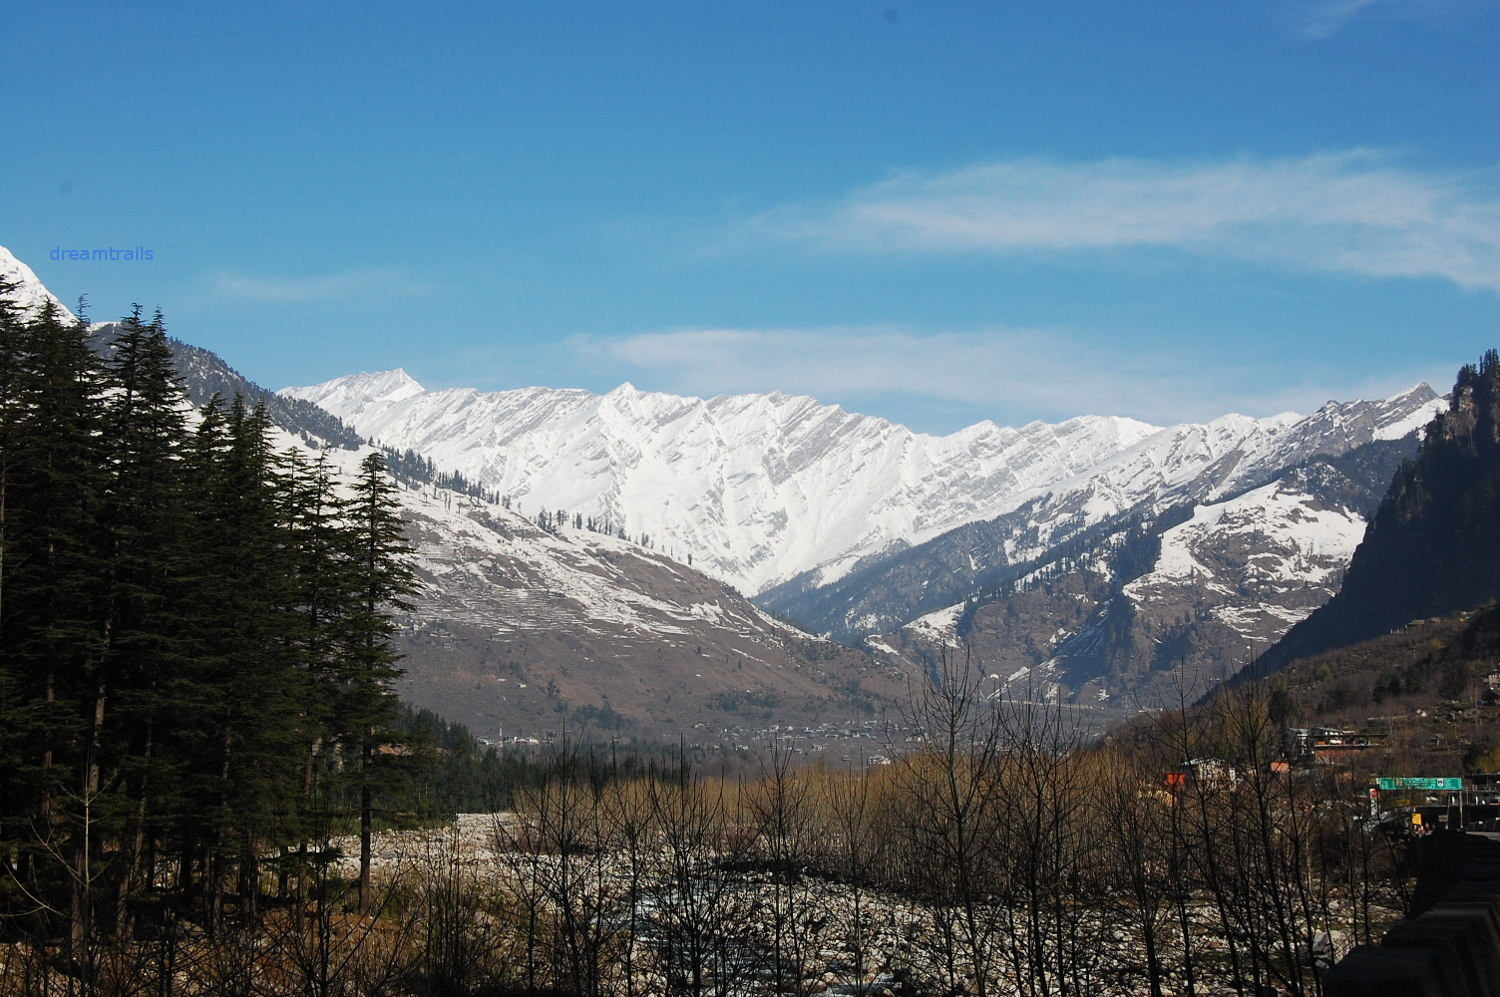 Snow Capped Mountains at Solang Valley, Manali